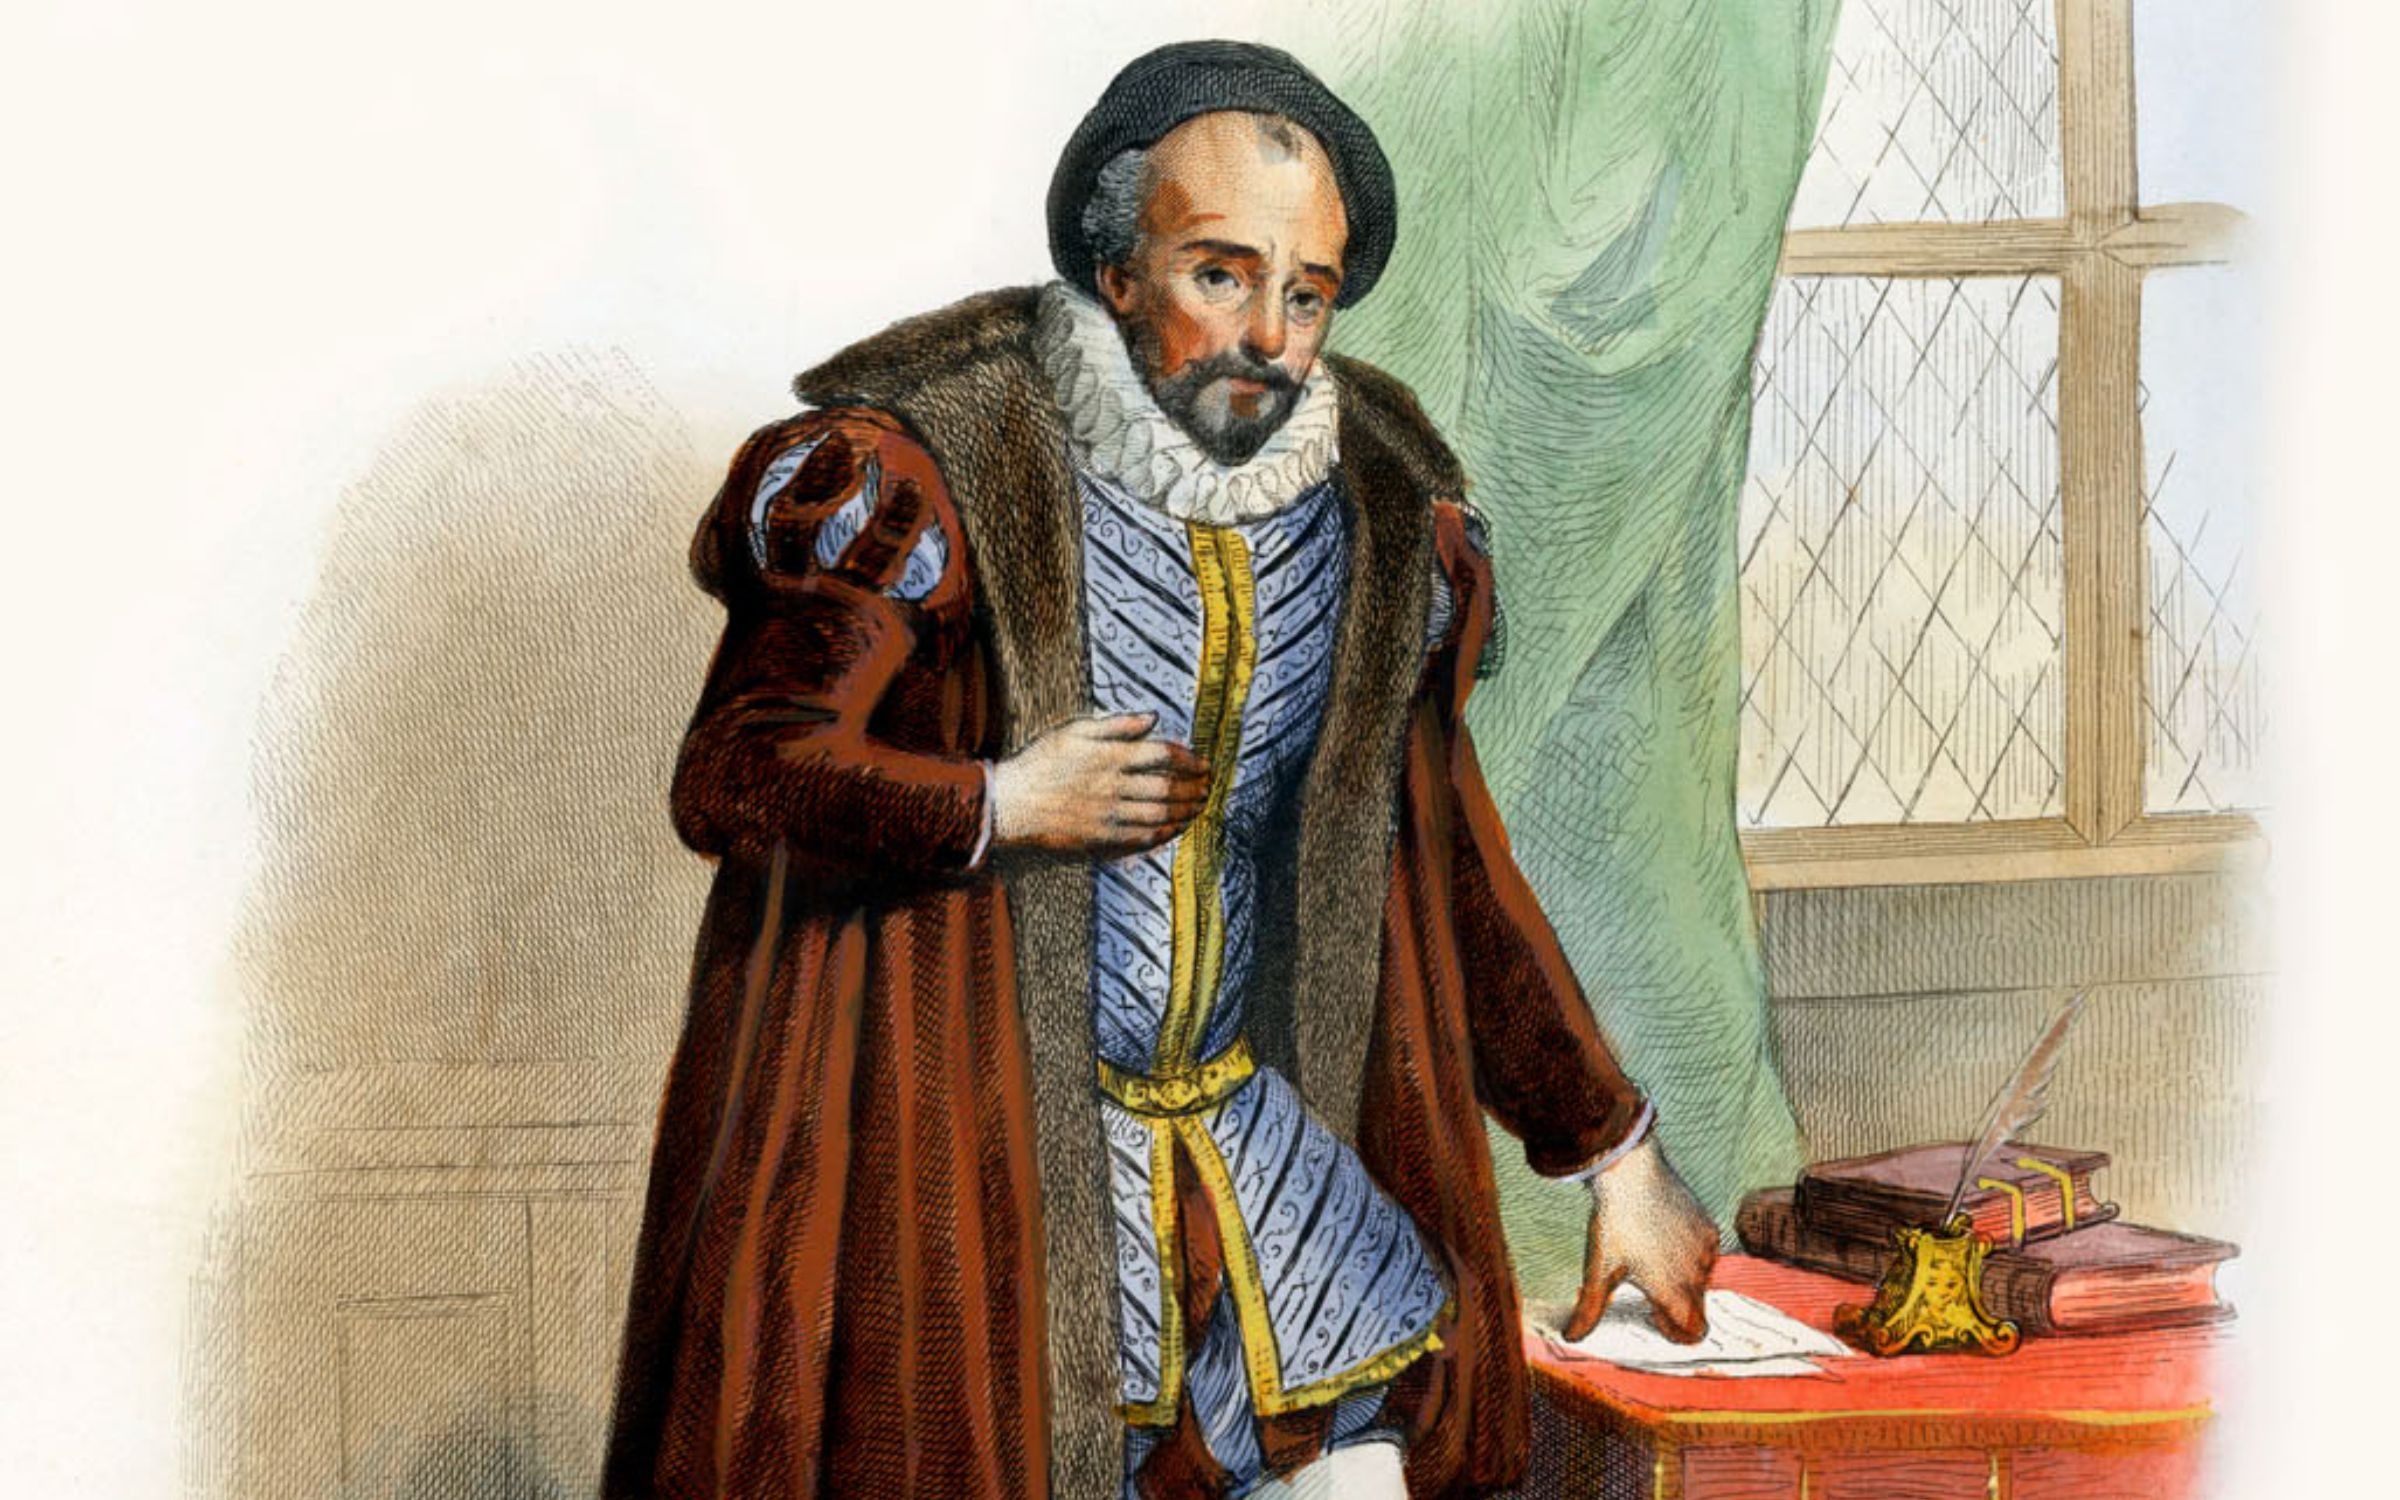 Michel de Montaigne. Influential writer of the French Renaissance; popularised the essay as a literary genre. Considered as the father of Modern Skepticism. 1533- 1592. Engraving by Langlois. (Photo by Culture Club/Getty Images) *** Local Caption ***